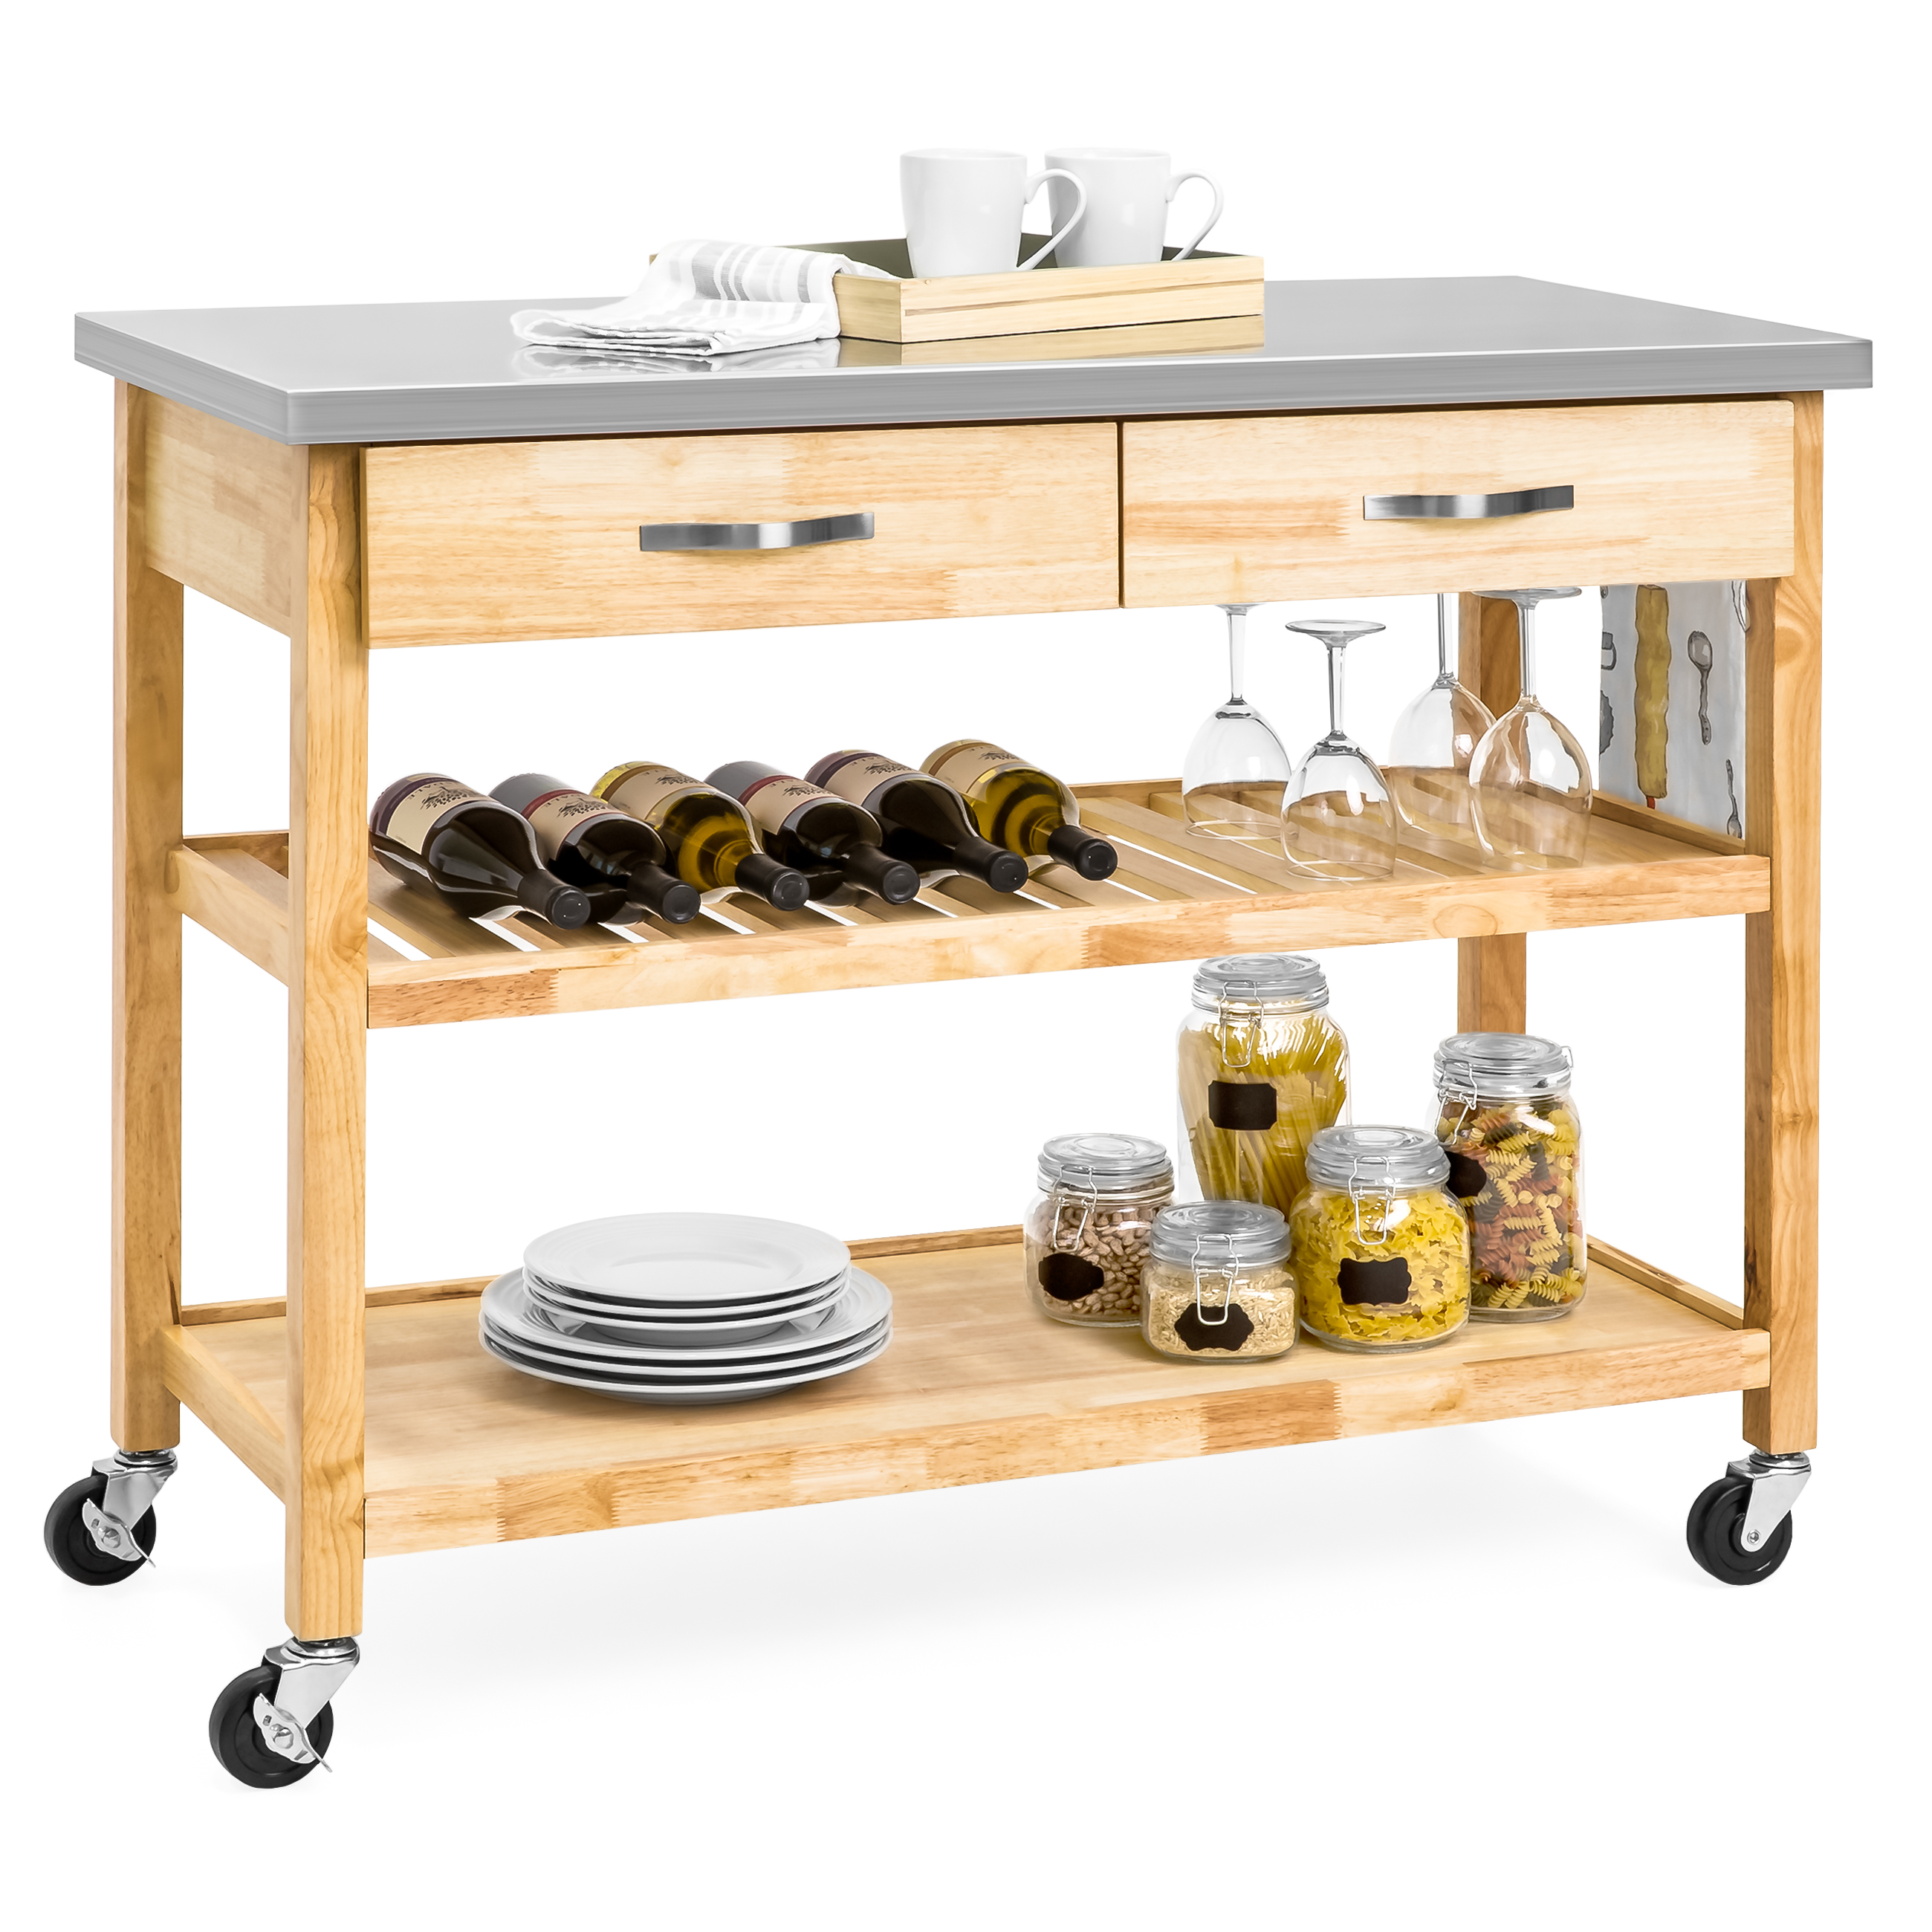 Superieur Best Choice Products 3 Tier Wood Rolling Kitchen Island Utility Serving  Cart W/ Stainless